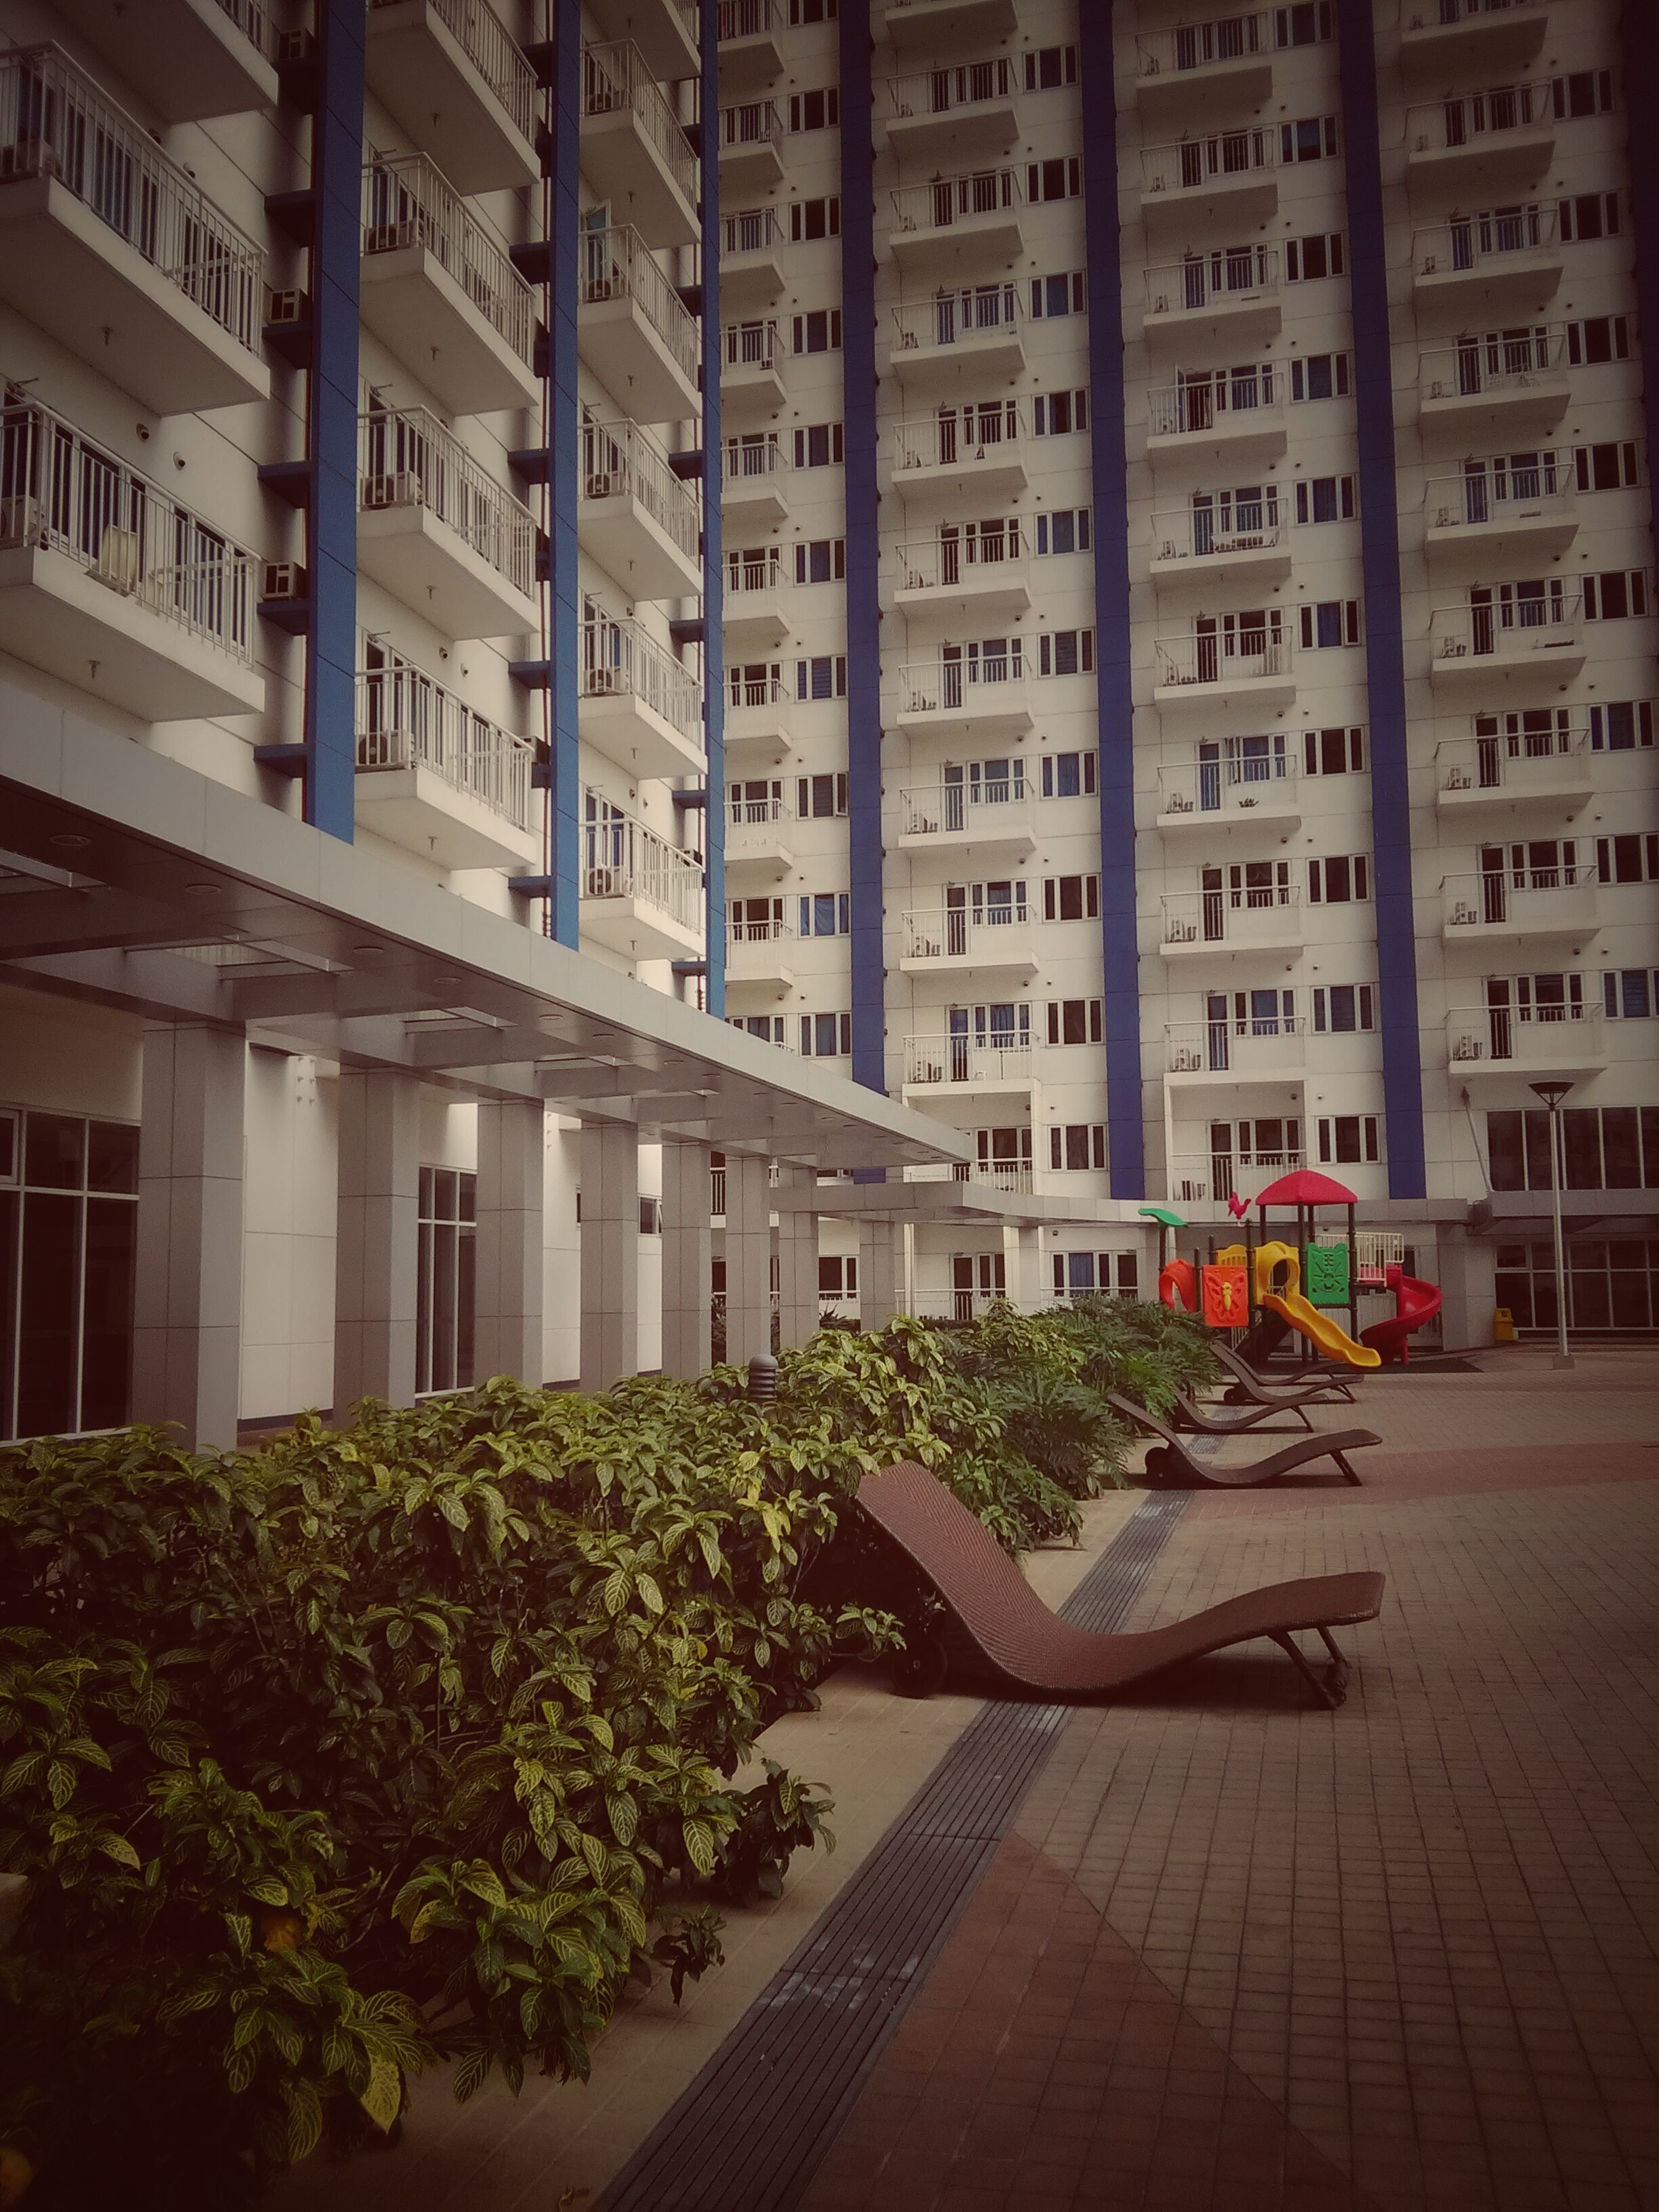 building exterior, architecture, built structure, city, residential building, building, residential structure, outdoors, day, apartment, no people, residential district, city life, plant, facade, growth, exterior, empty, walkway, green color, narrow, the way forward, diminishing perspective